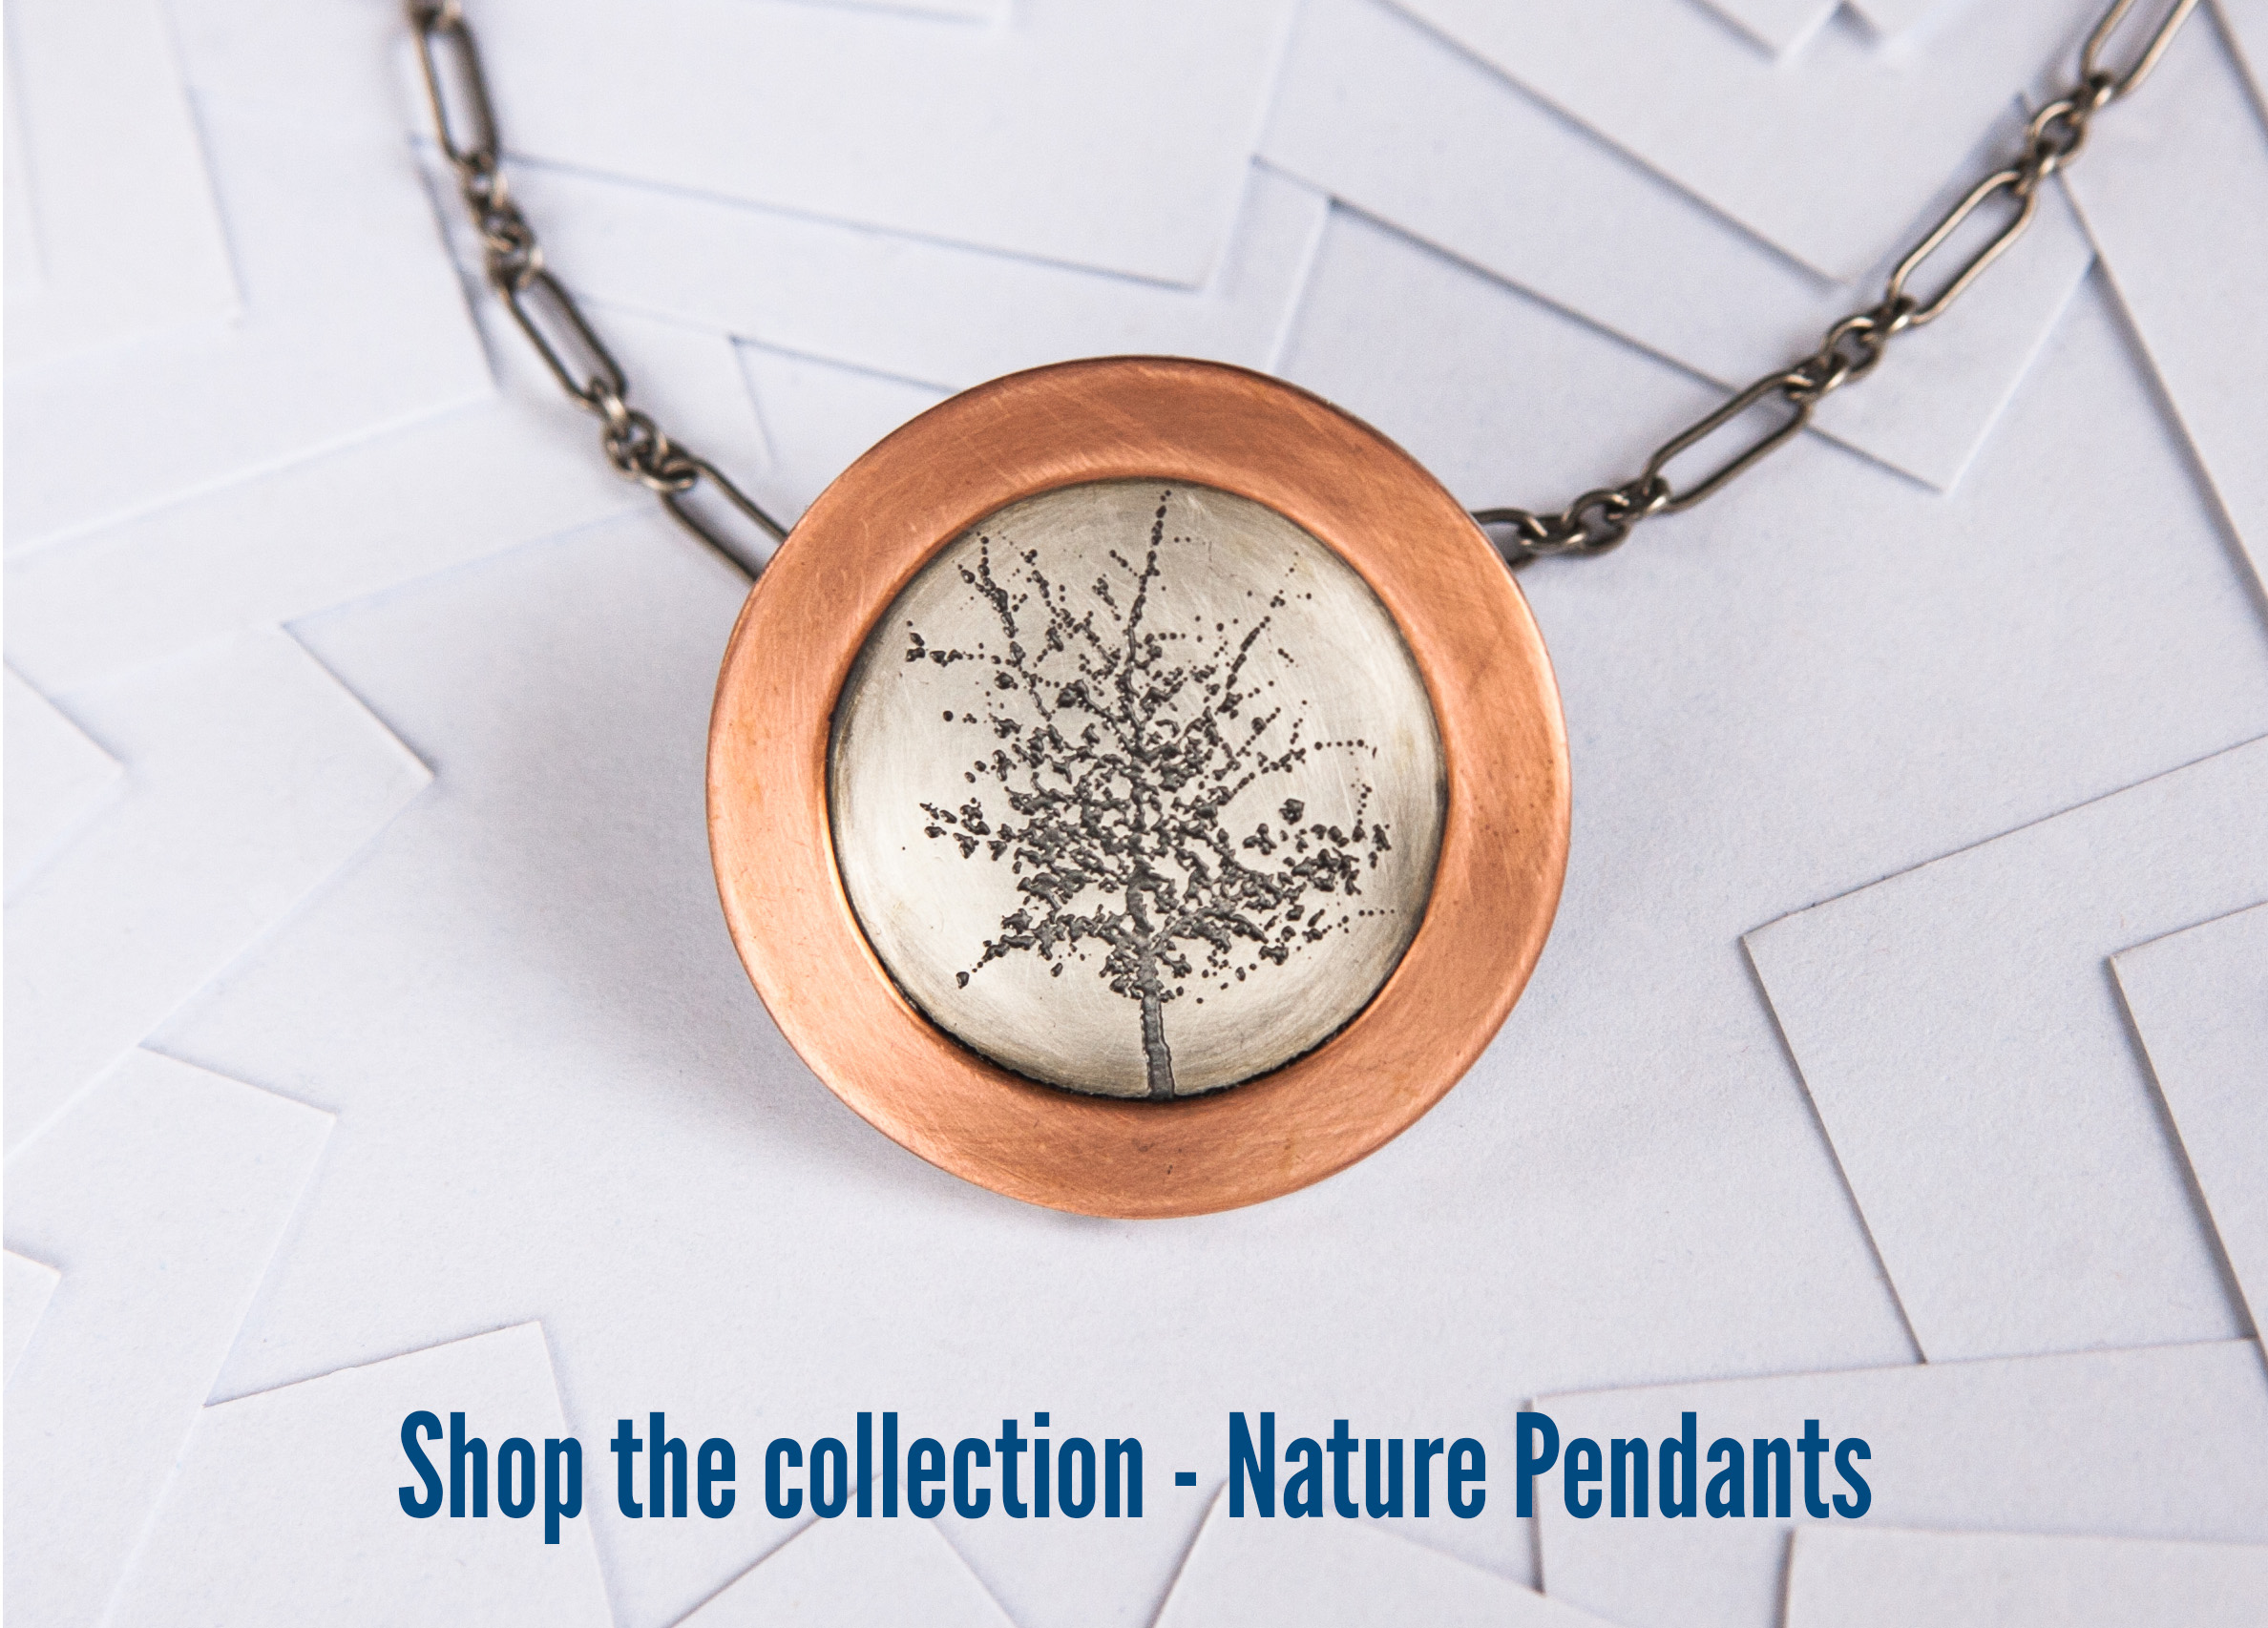 Winter-Tree-Pendant-Dana-Reed-category-image.jpg